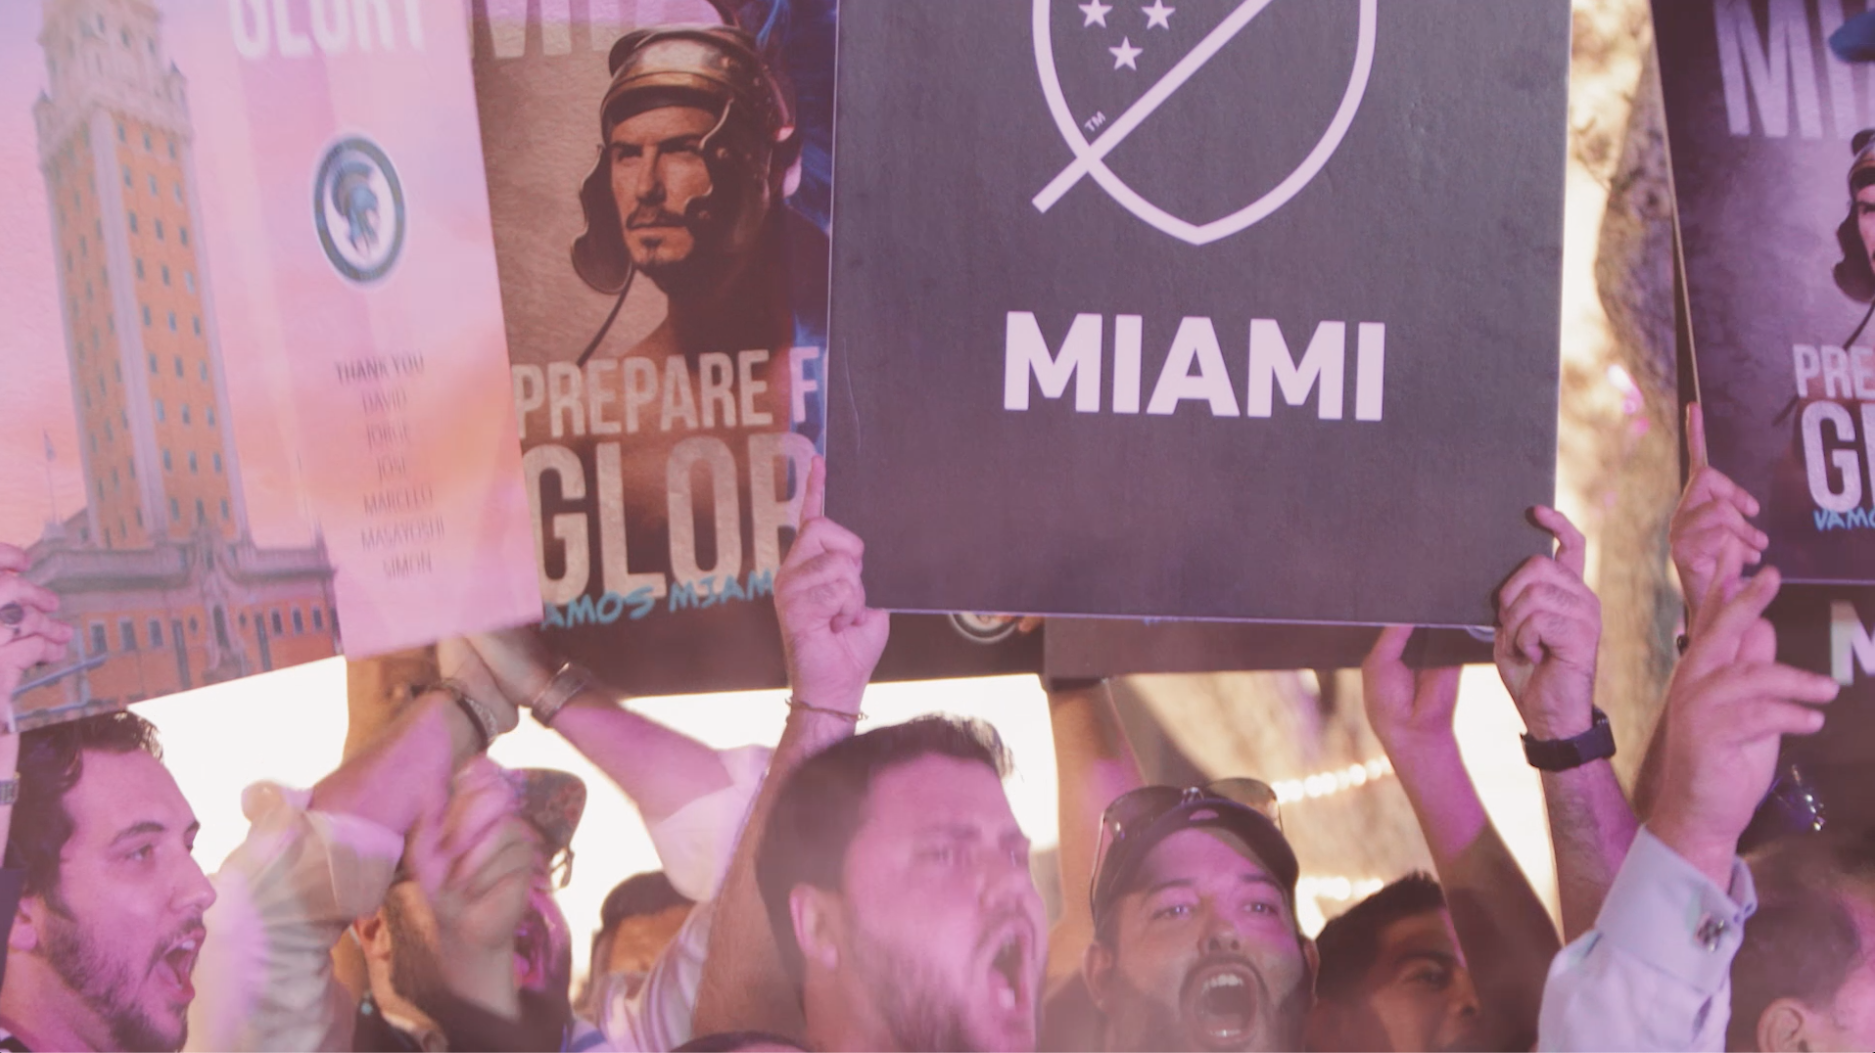 Miami voters clear path for Inter Miami to negotiate lease for new stadium